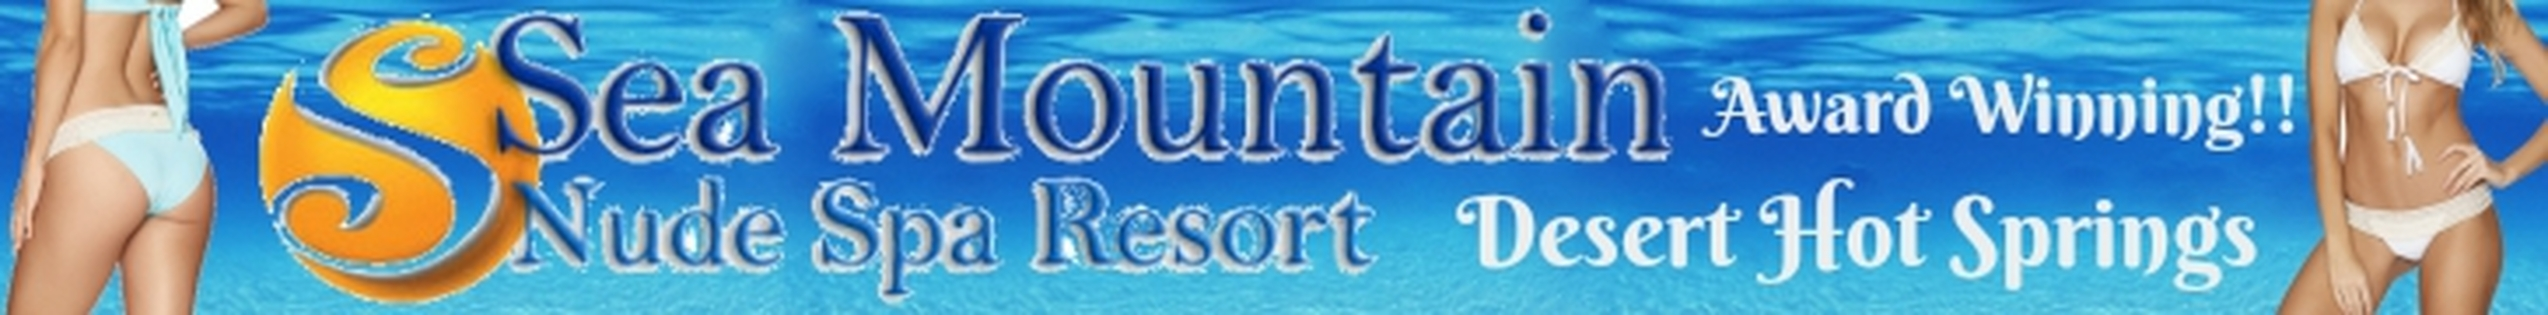 Sea Mountain Resort